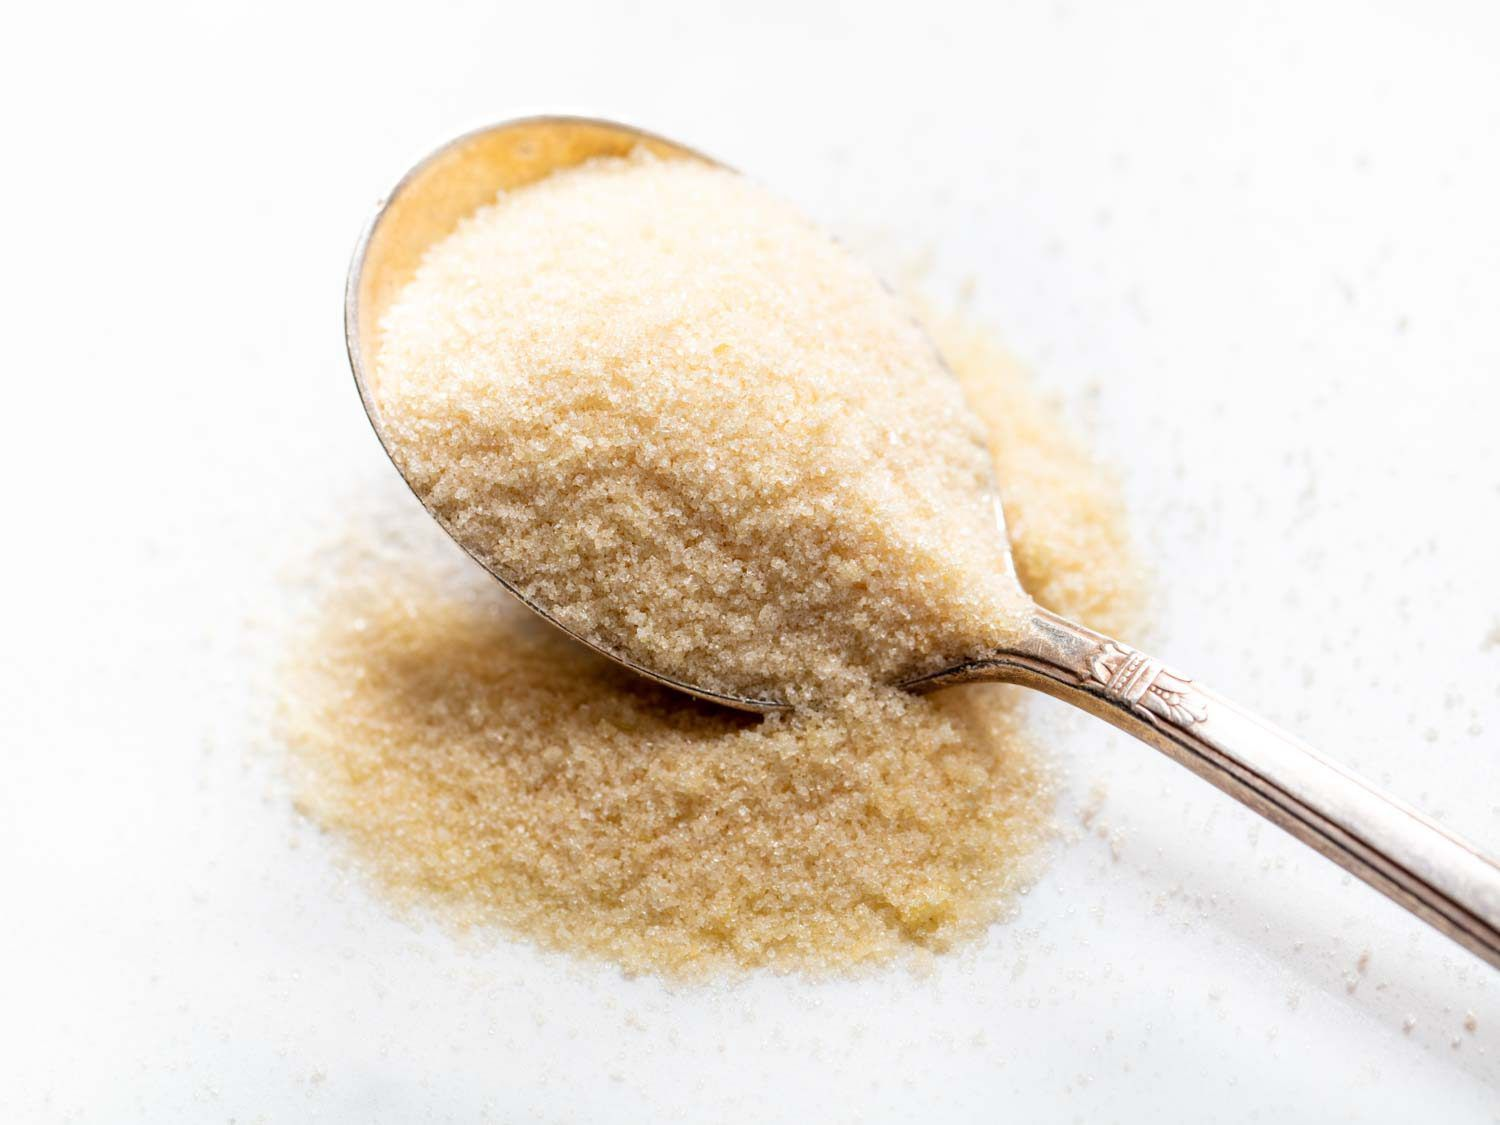 a spoonful of toasted sugar